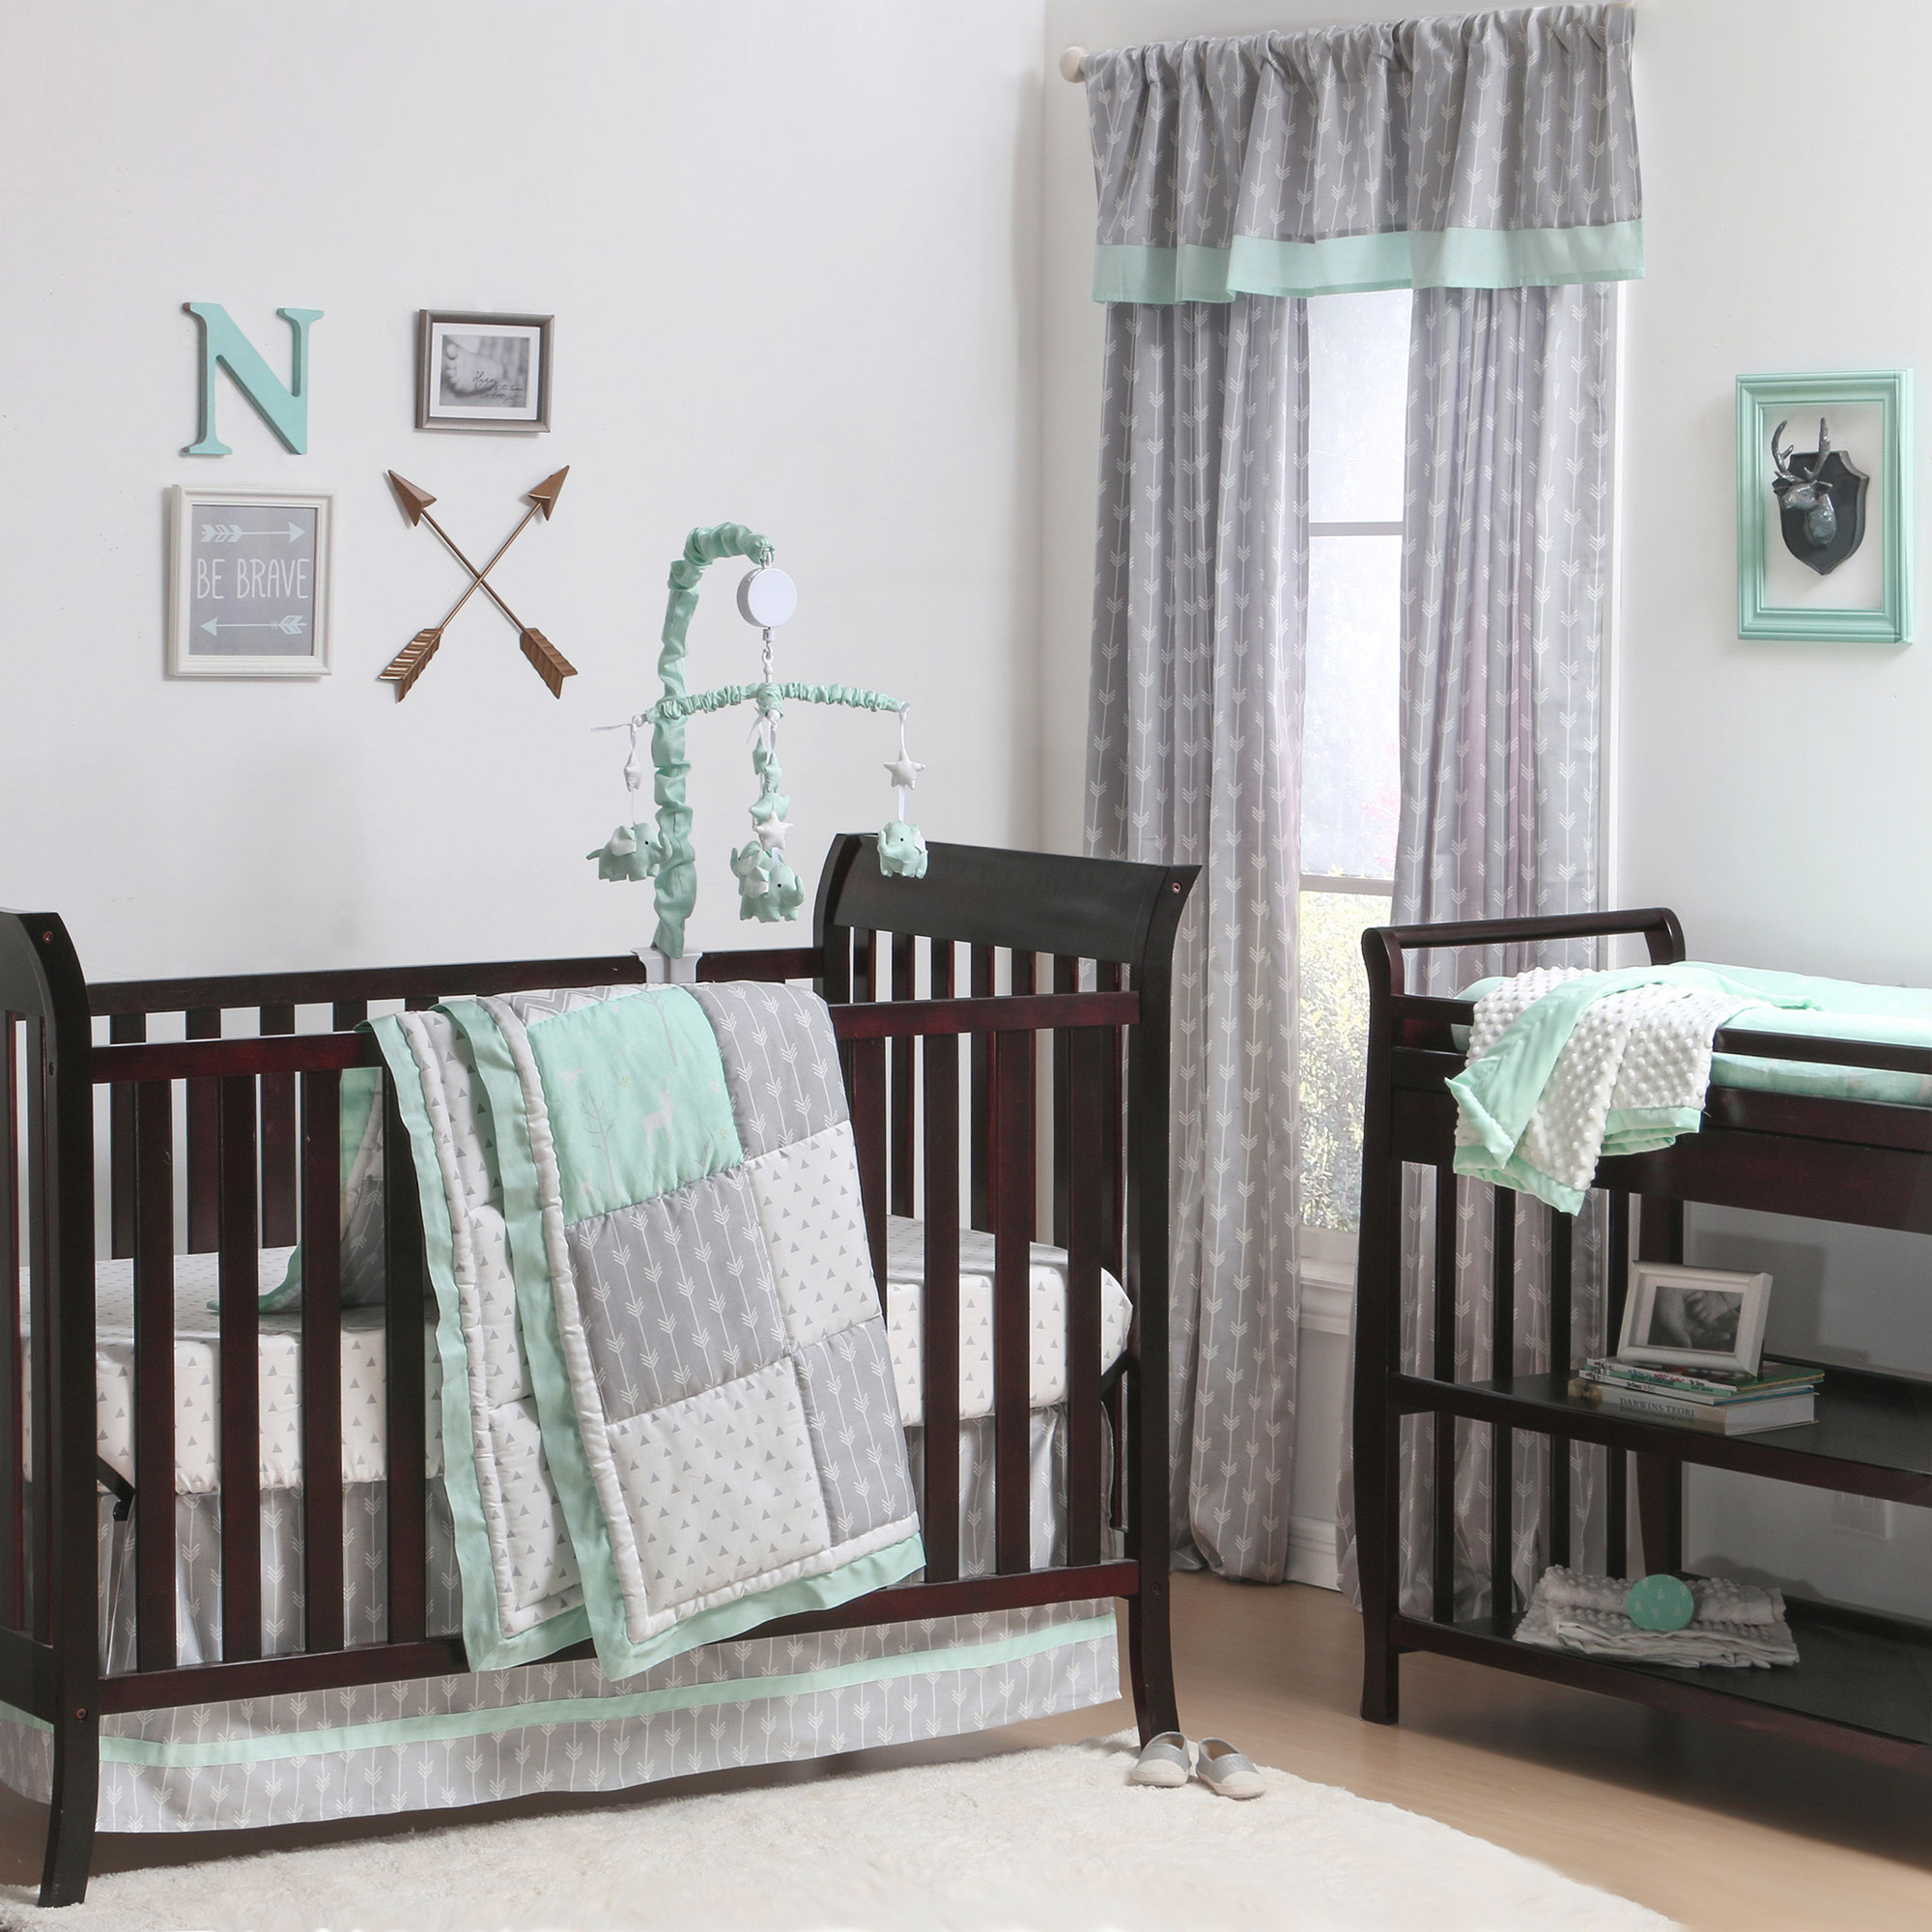 The Peanut Shell 3 Piece Baby Crib Bedding Set - Mint Green Woodland and Geometric Patchwork - 100% Cotton Quilt, Crib Skirt and Sheet